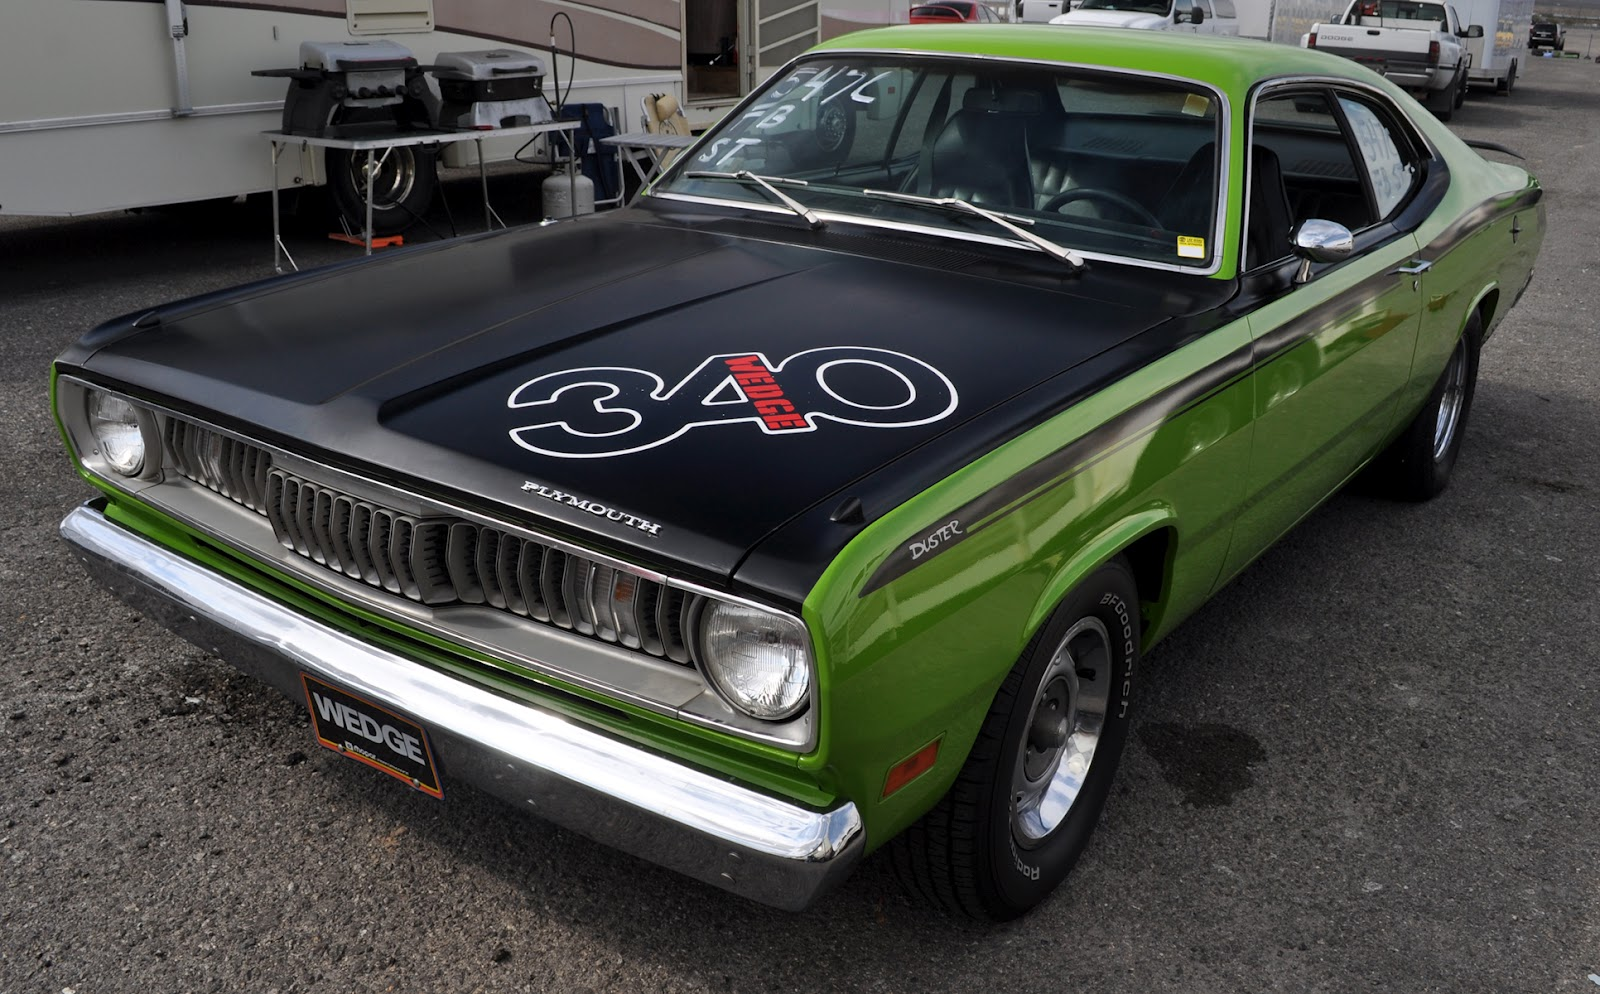 Classic Cars Authority: 340 Wedge, the biggest and last factory engine ...